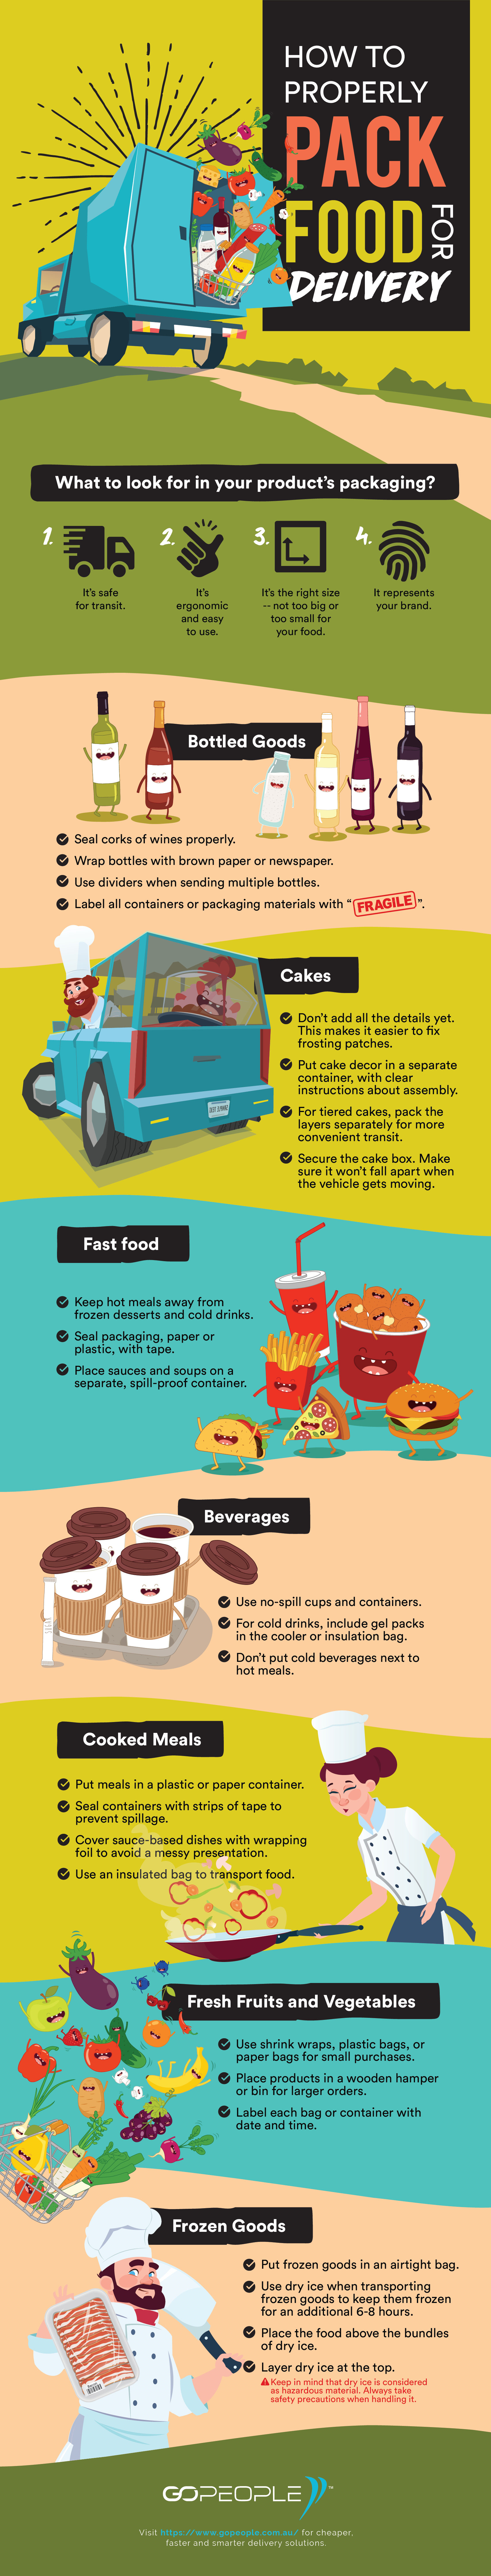 How to Properly Pack Food for Delivery infographic